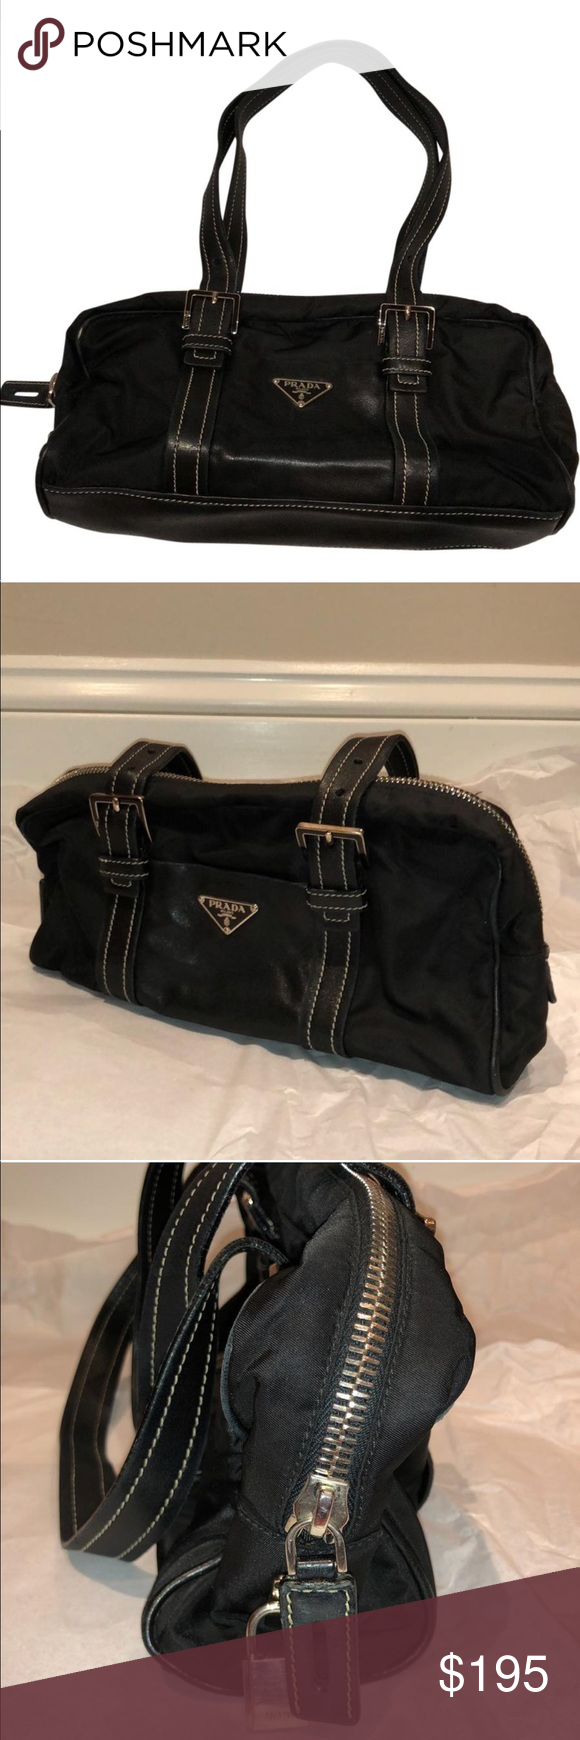 755cffc36f2 Prada Black Lambskin Leather and Nylon Purse Beautifully kept classic Prada  bag in Nylon with Lambskin